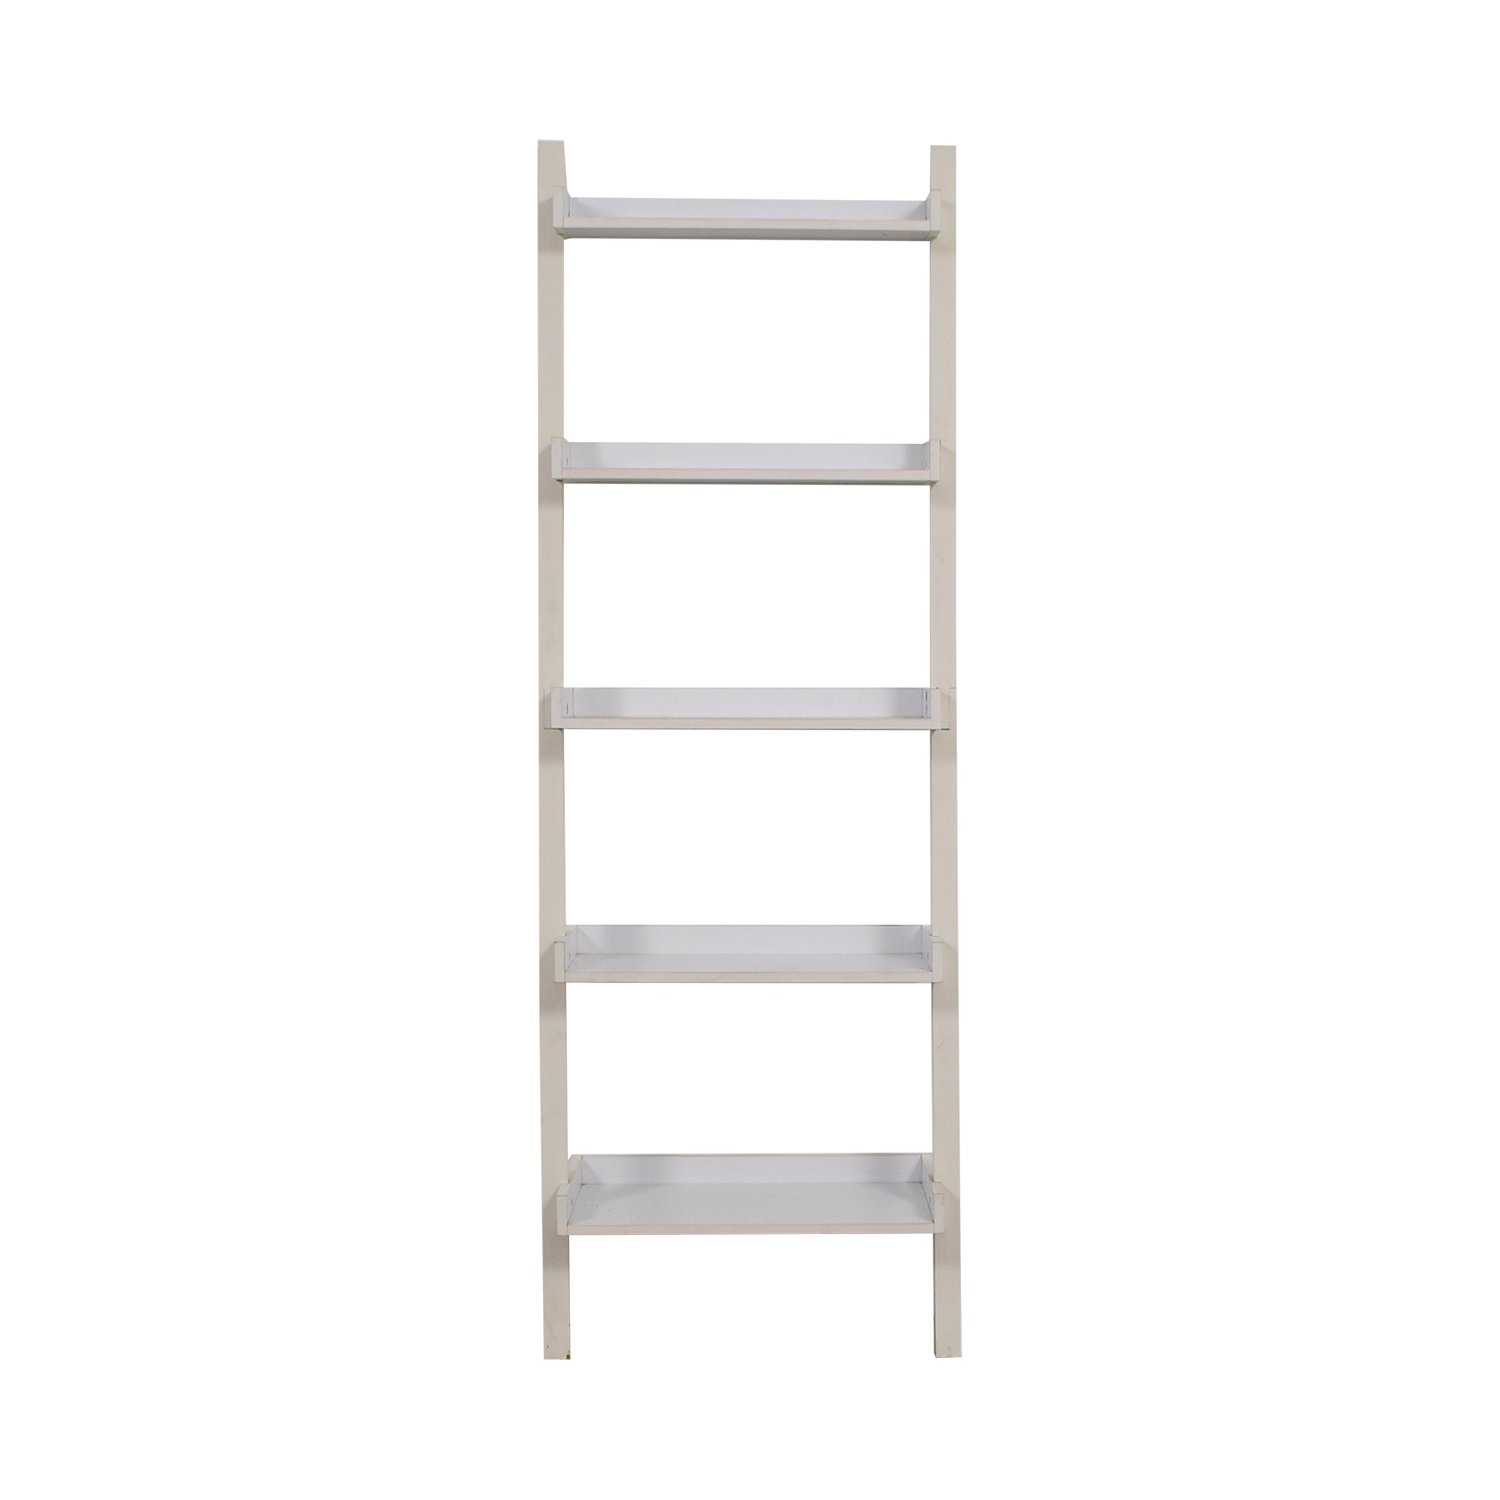 Container Store Container Store White Leaning Bookshelf Bookcases & Shelving